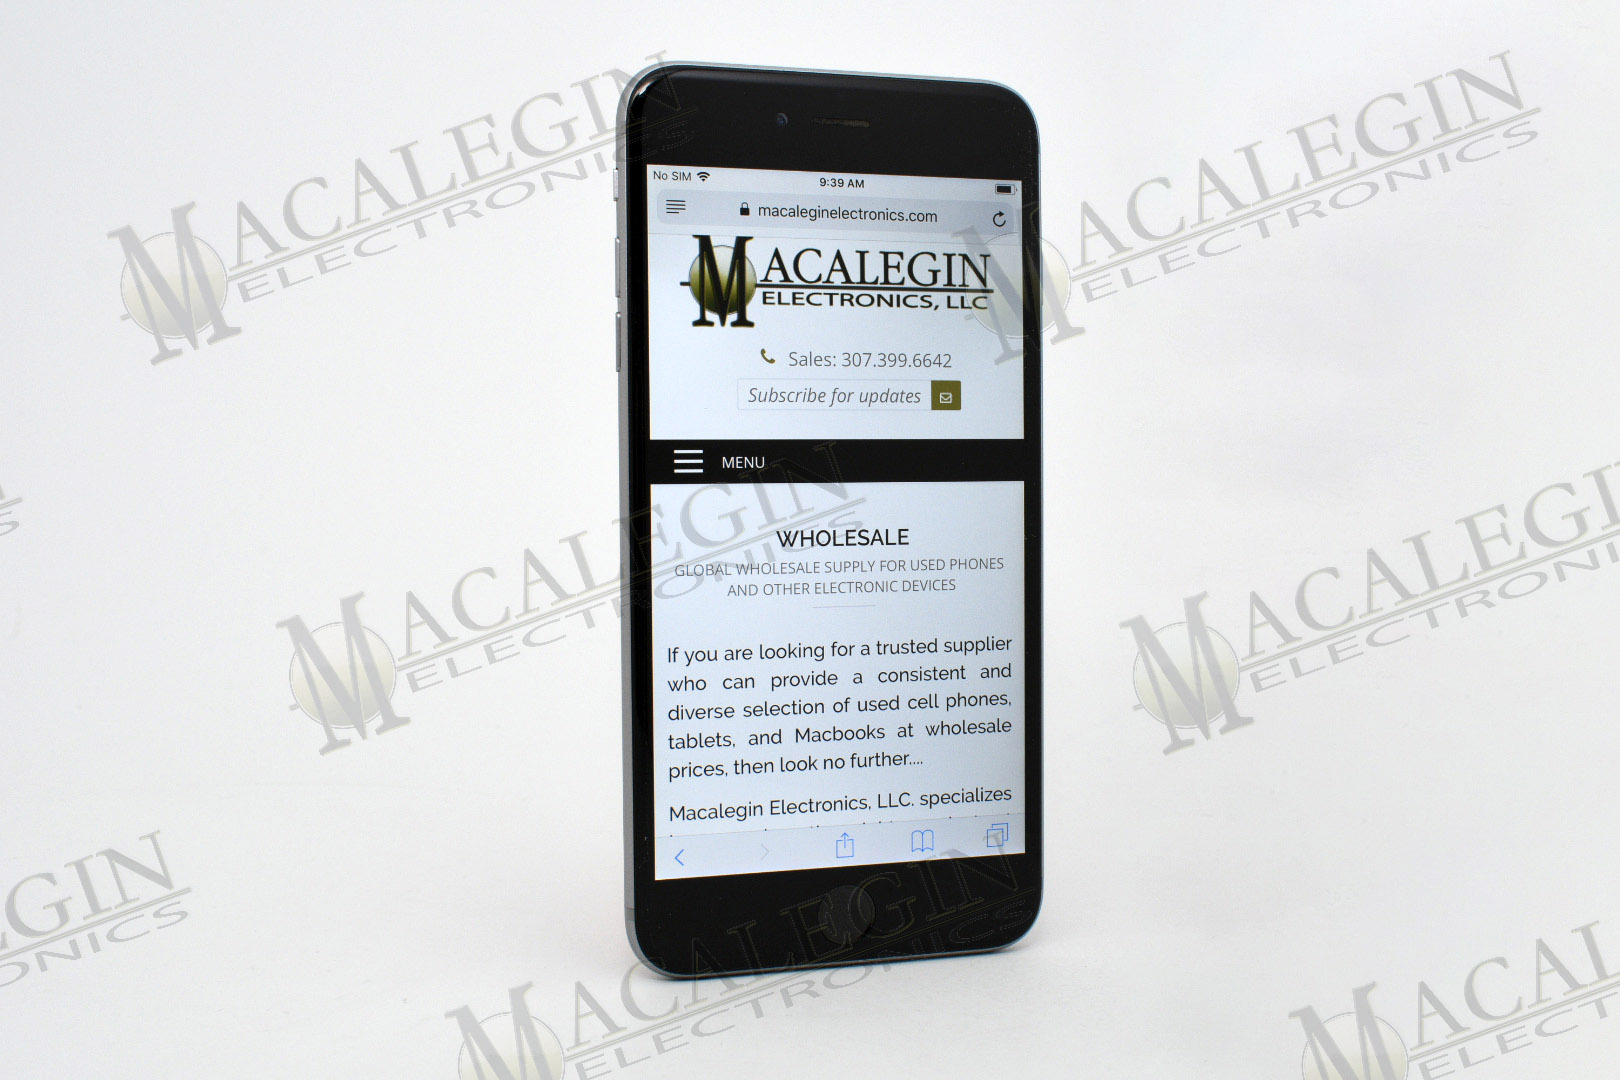 Used APPLE A1522 IPHONE 6 PLUS 128GB UNLOCKED in PGL condition for sale from Macalegin Electronics at $172 a piece.